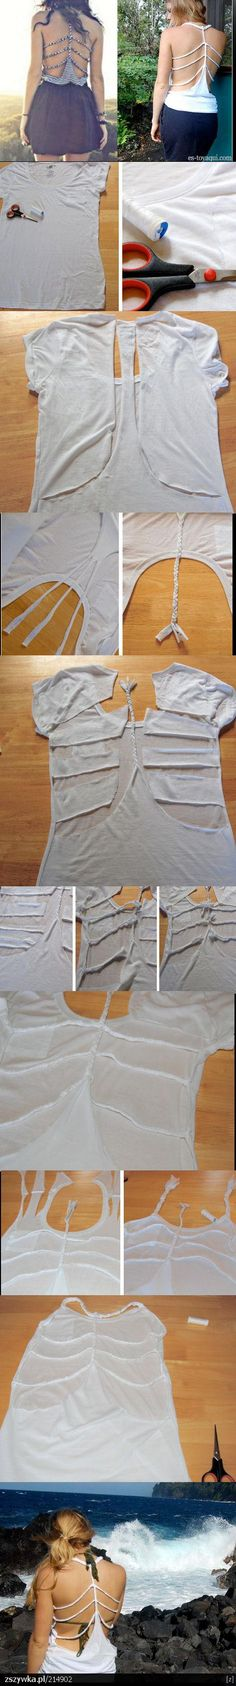 Braided #t-shirt reconstruction #diy